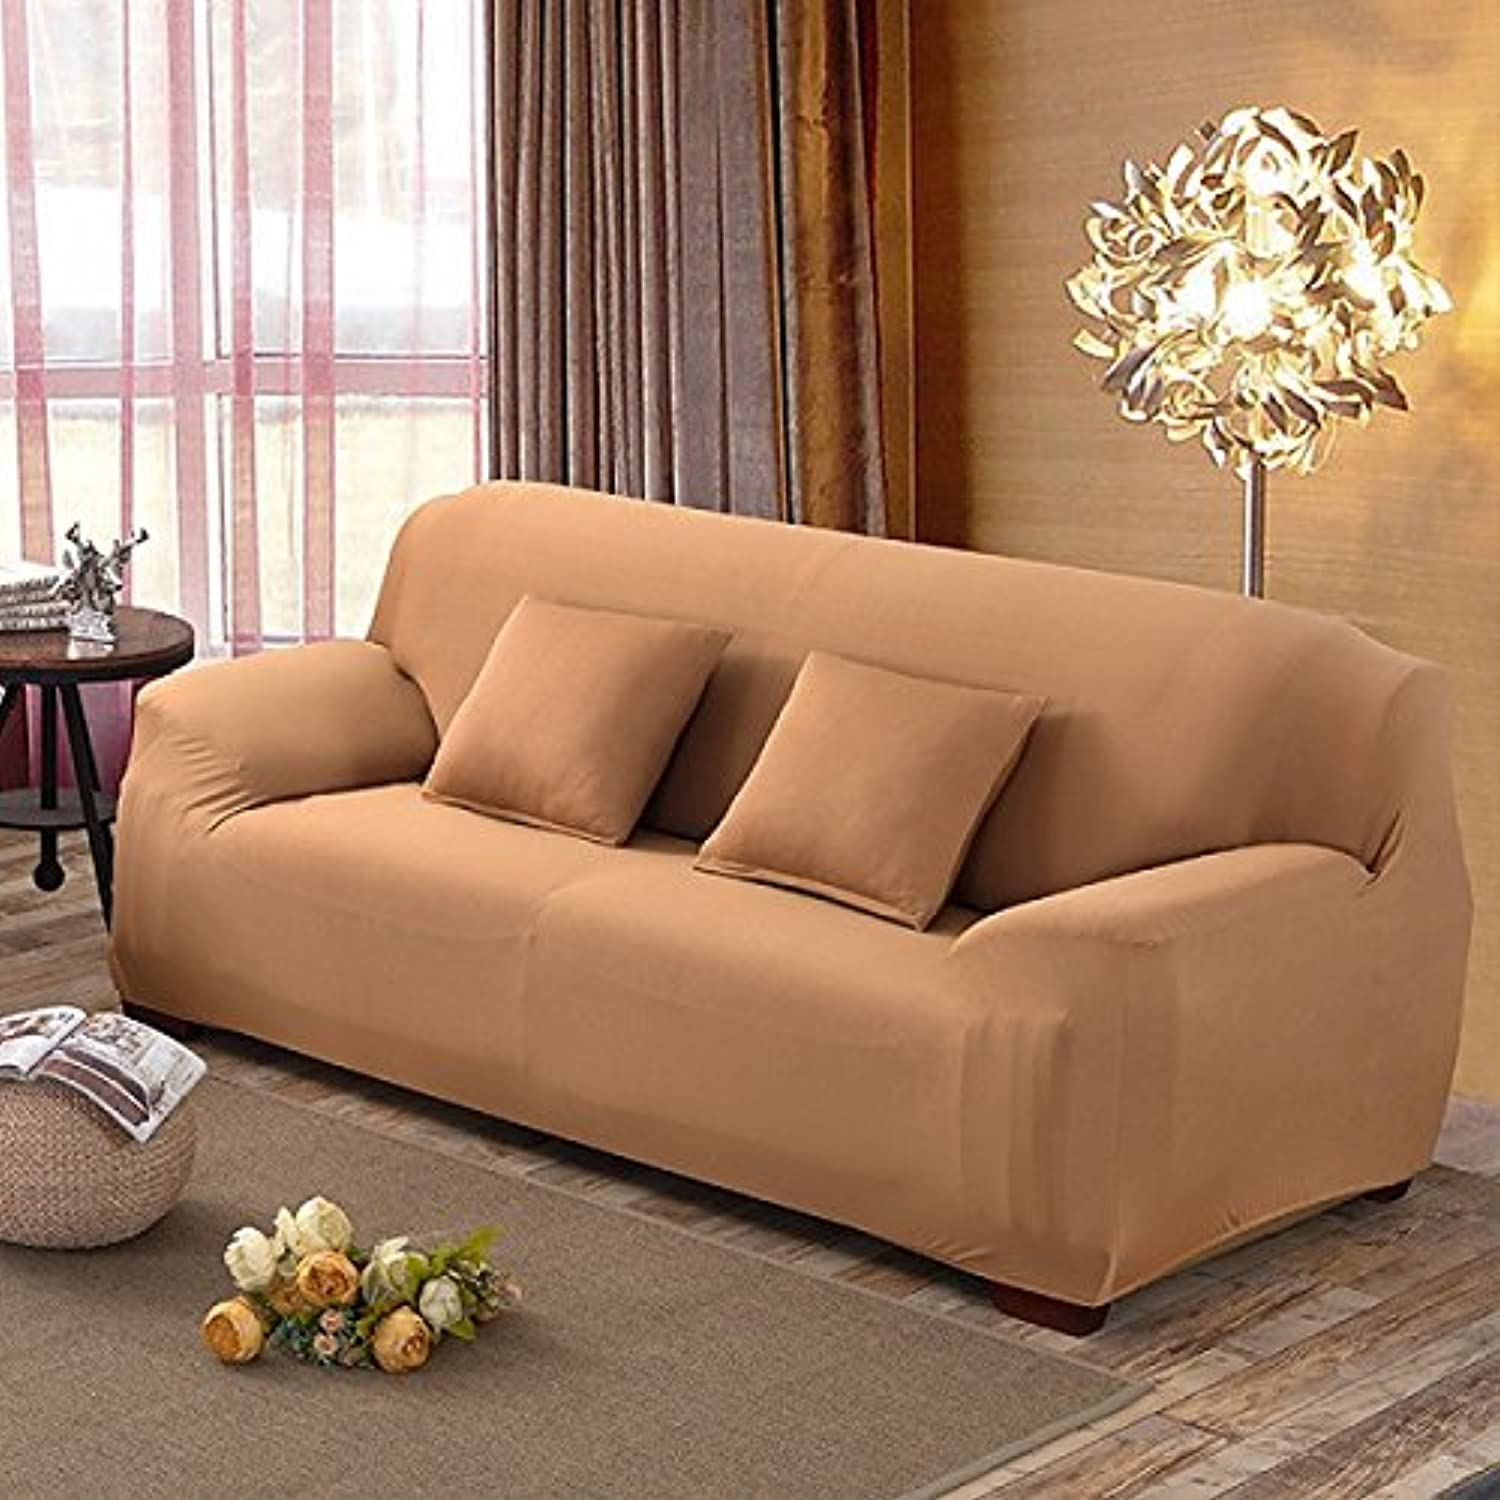 Farmerly Stretch Sofa Cover Big Elasticity 100% Polyester Spandex Couch Cover 1 2 3 Seater Elastic Sofa Cover Solid funda Sofa Covers   Camel, Single seat 90-140cm